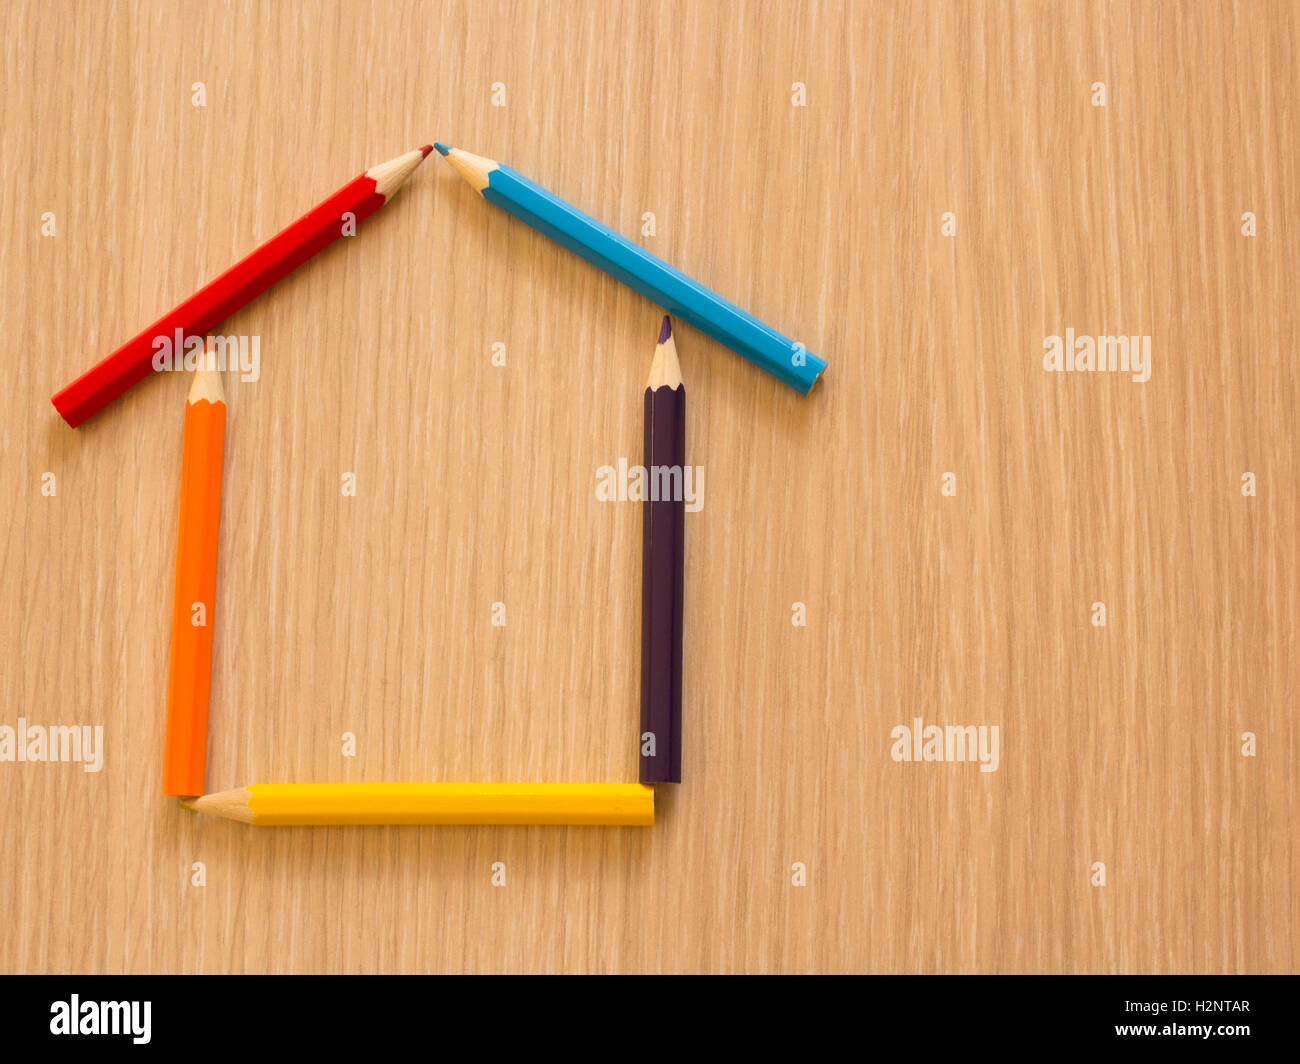 house made with colored pencils - Stock Image